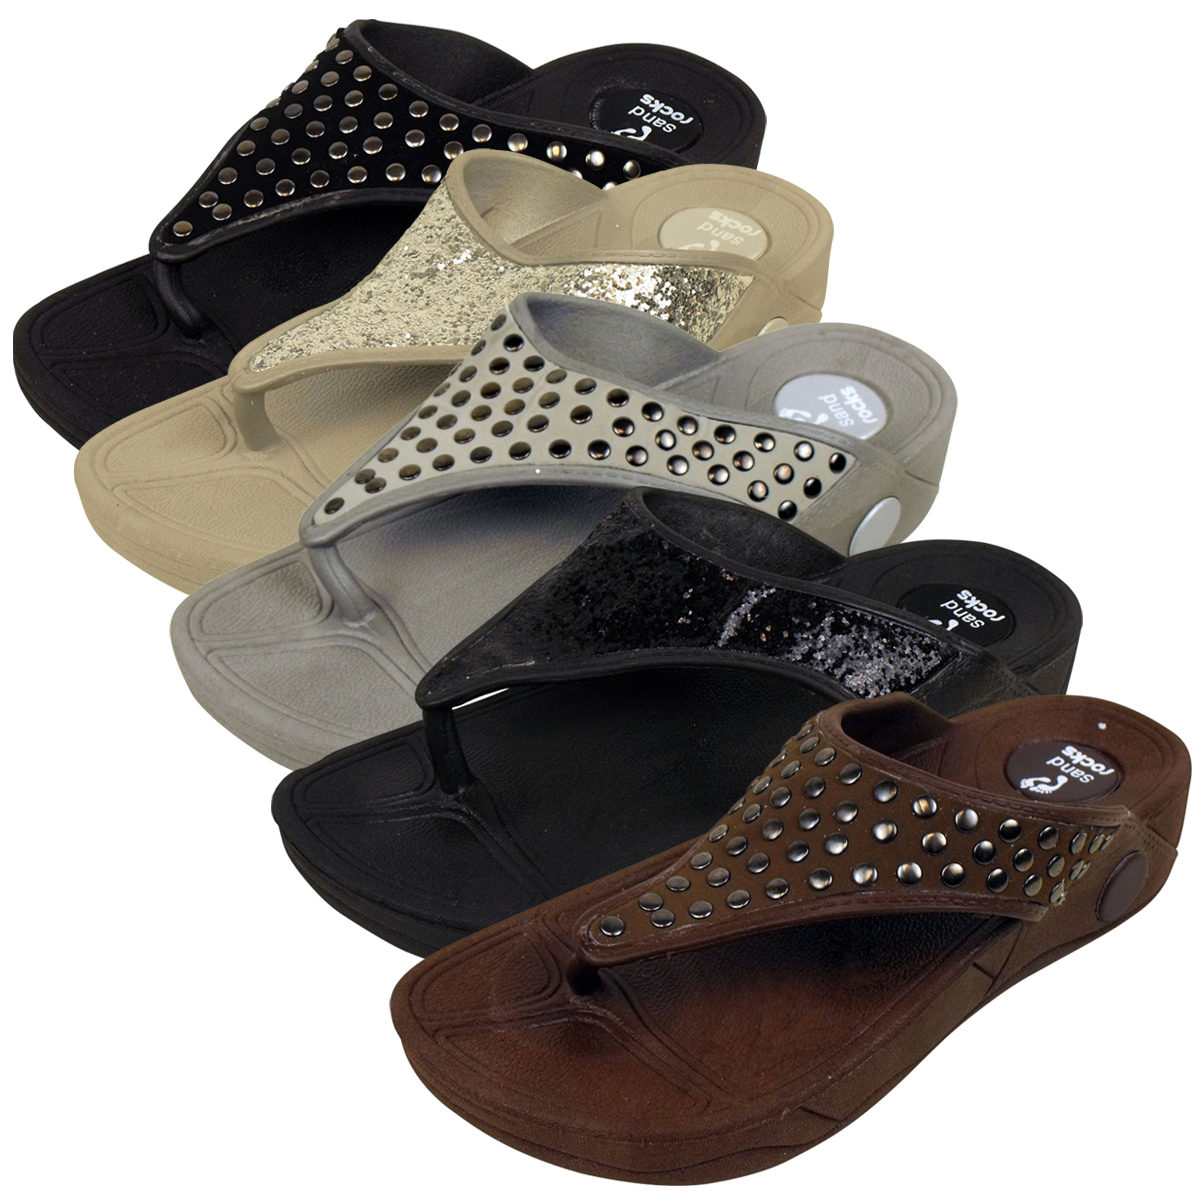 Shop the latest FitFlop Shoe Size 5 Shoes at settlements-cause.ml Read customer reviews on FitFlop Shoe Size 5 Shoes and get TV showtimes for FitFlop.